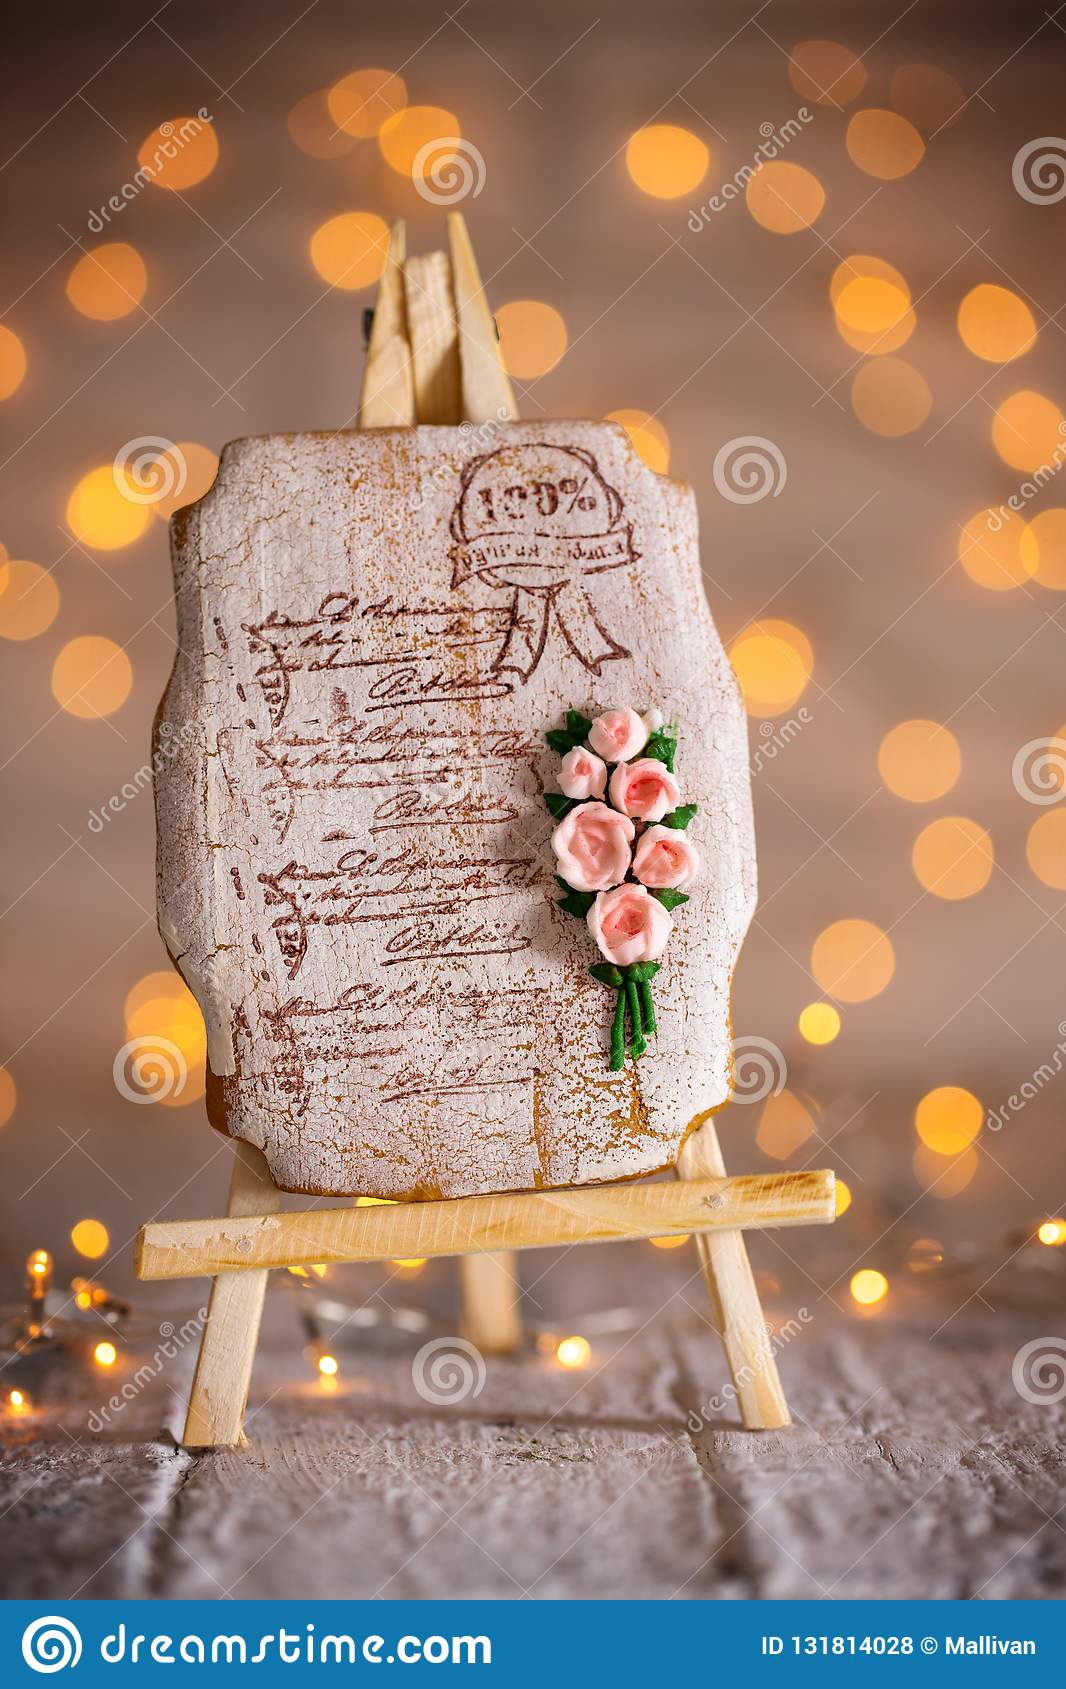 Gingerbread With A Bouquet Of Roses Stock Photo Image Of Gift